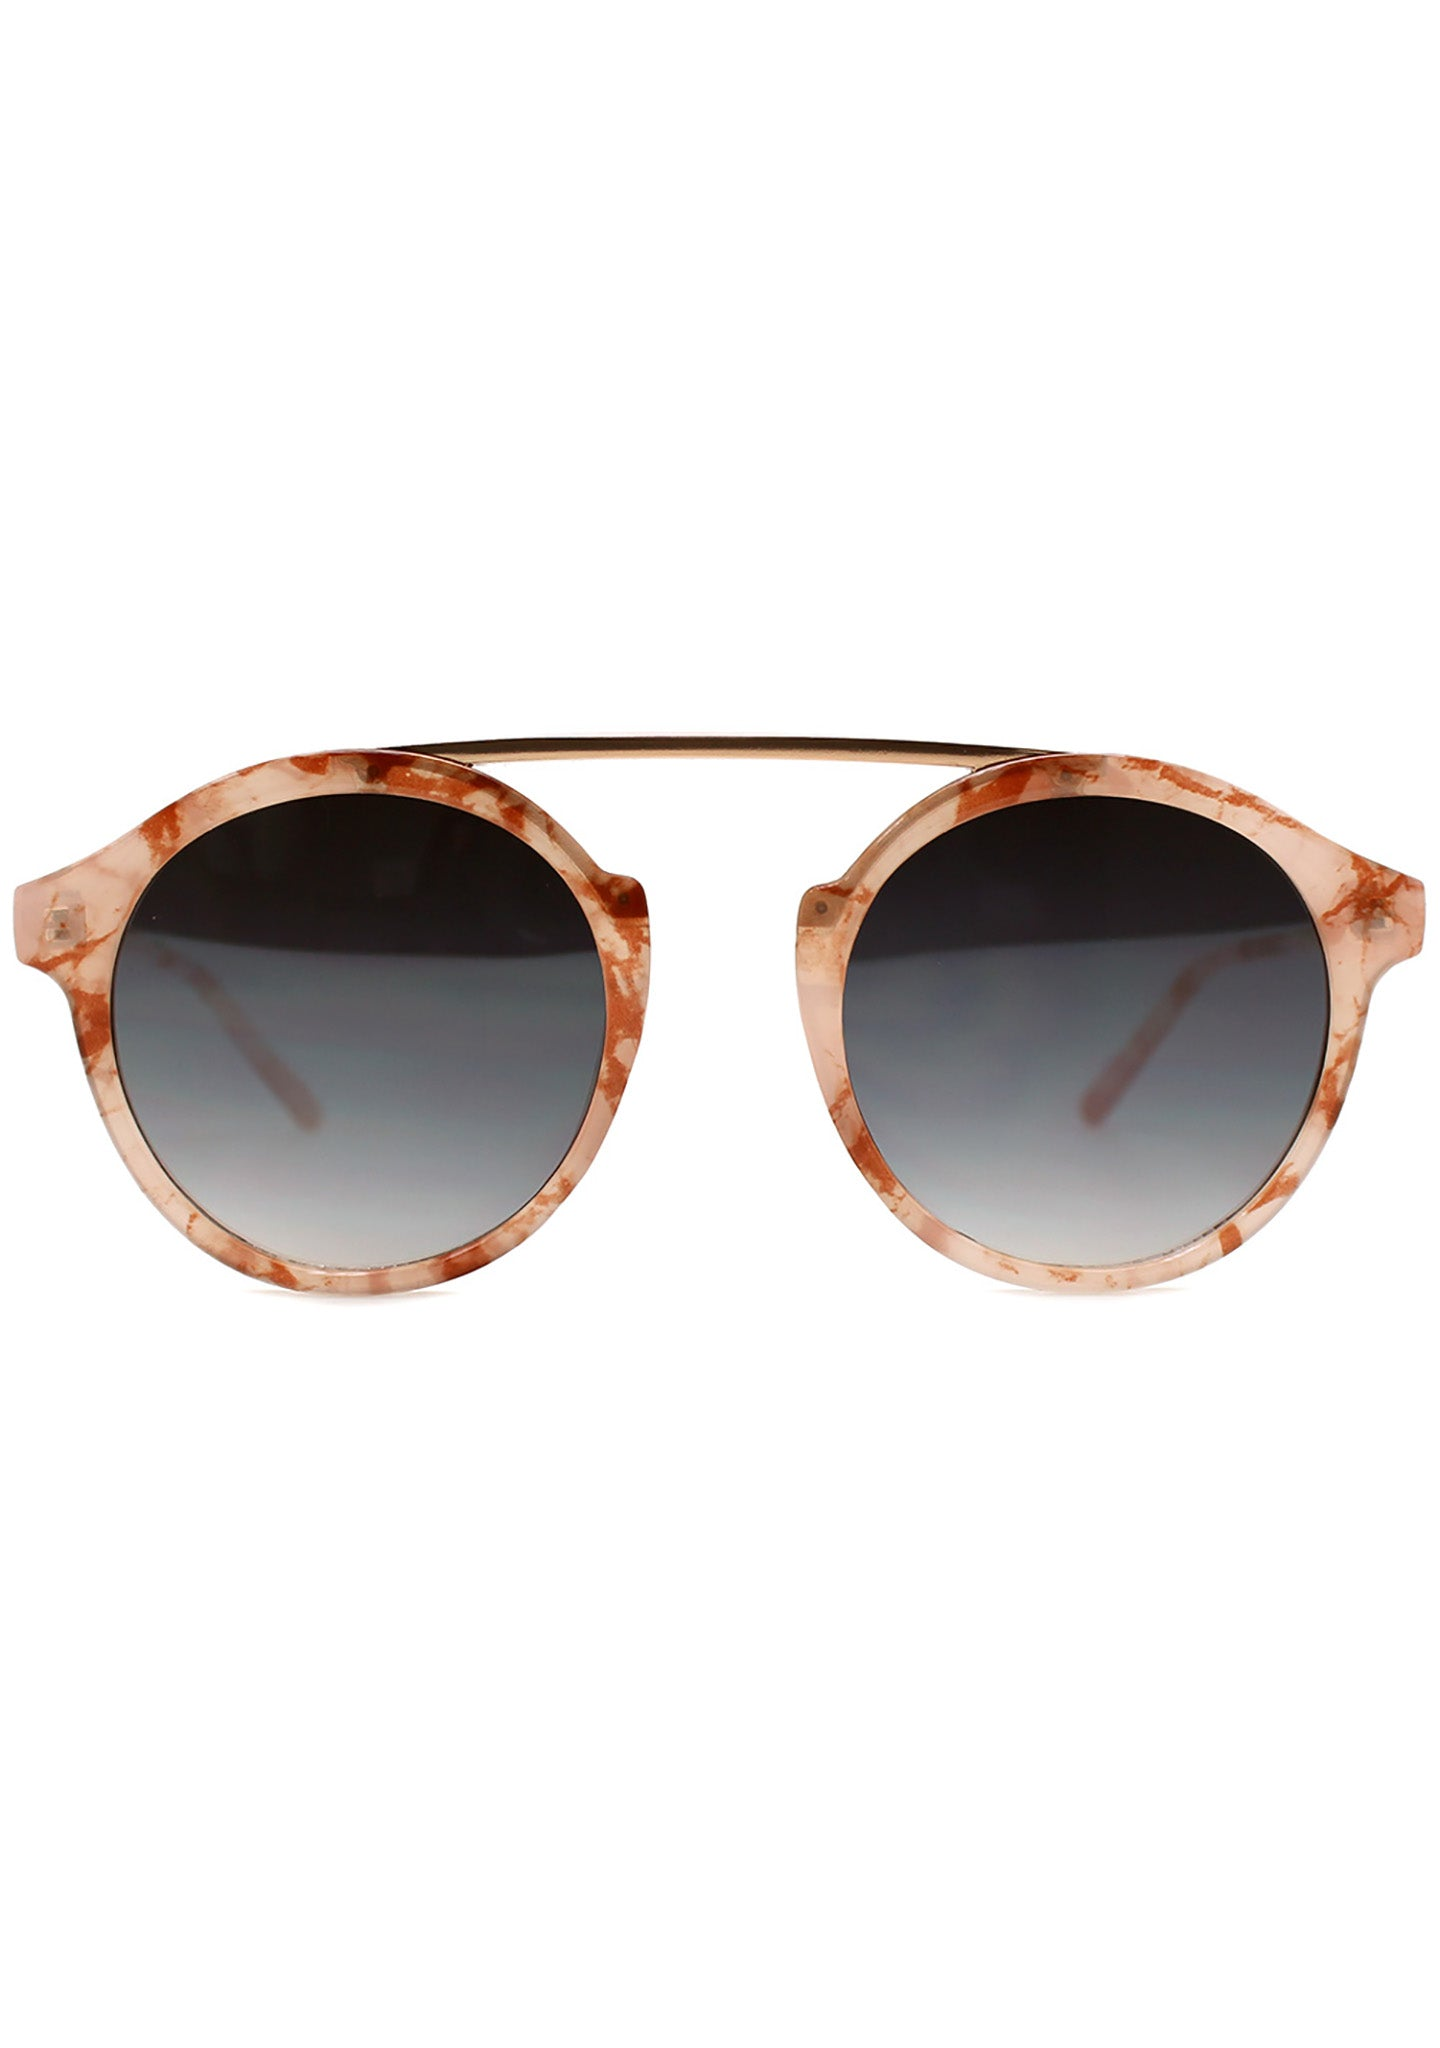 7 LUXE Off World Sunglasses